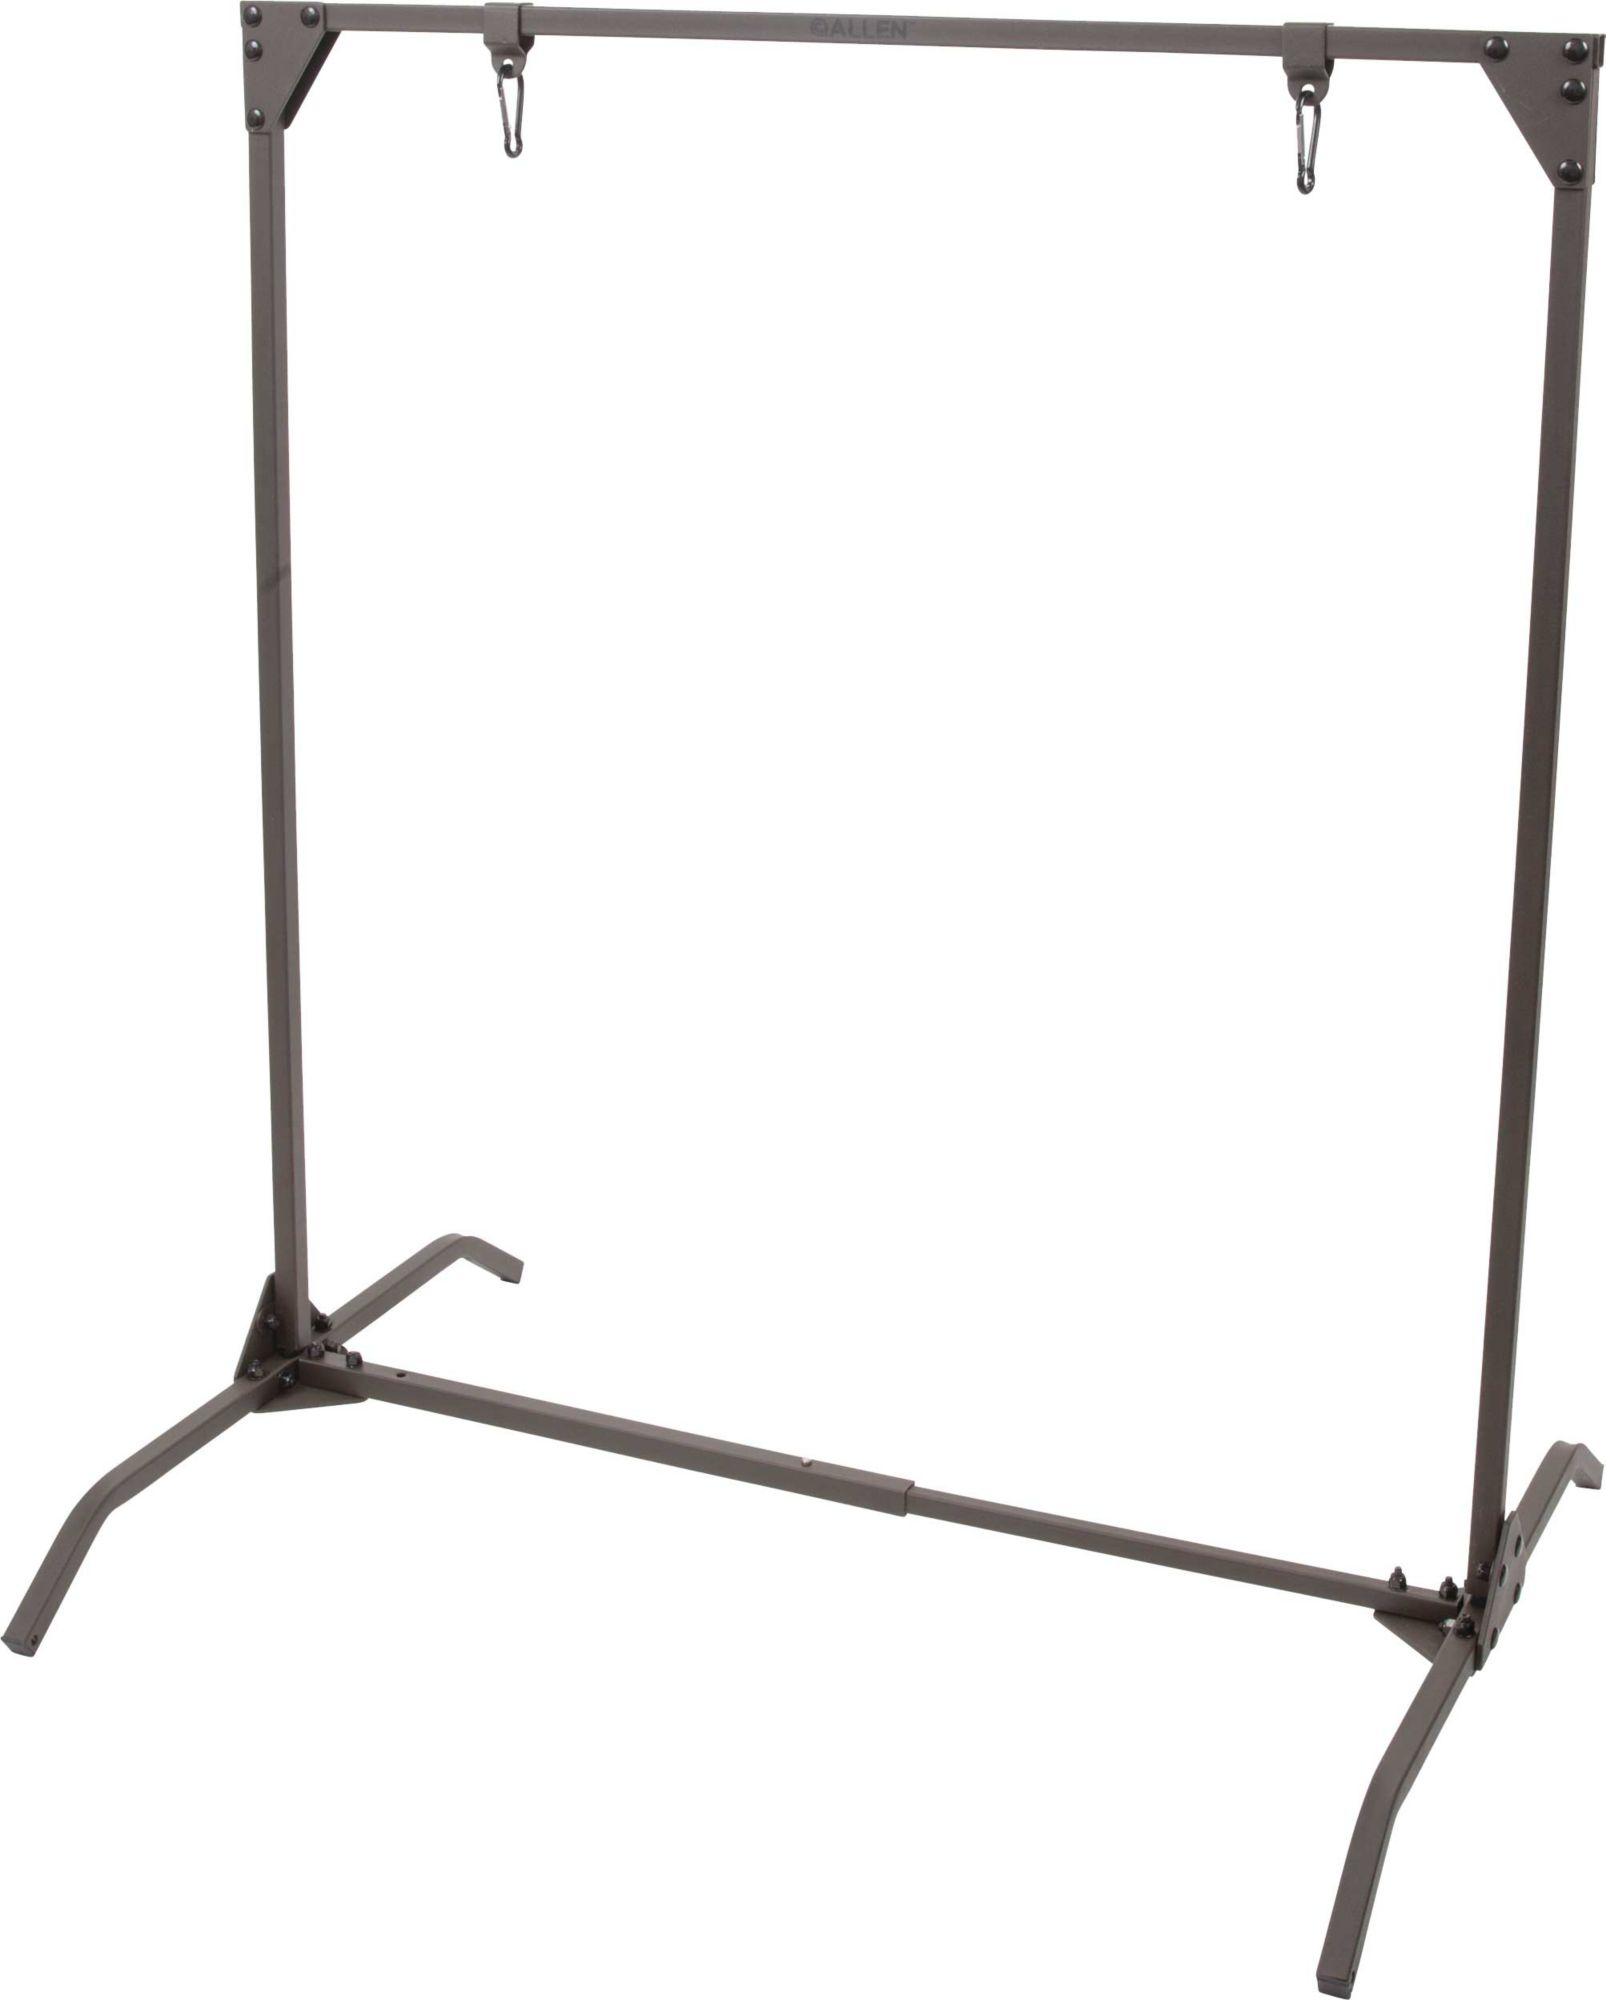 Allen Universal Target Stand, Silver thumbnail